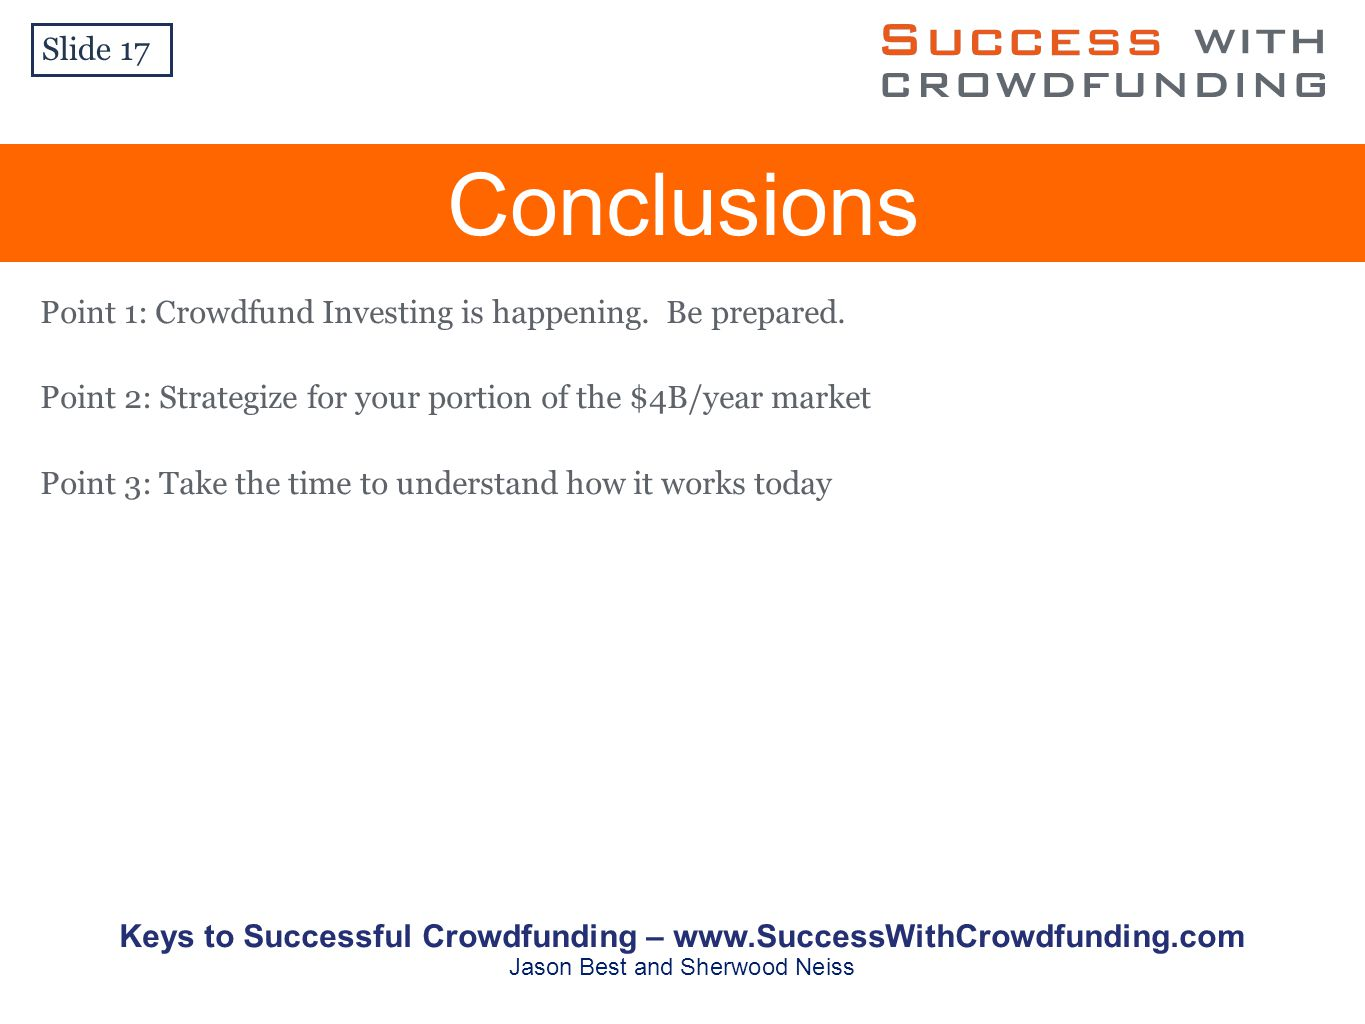 Point 1: Crowdfund Investing is happening. Be prepared.